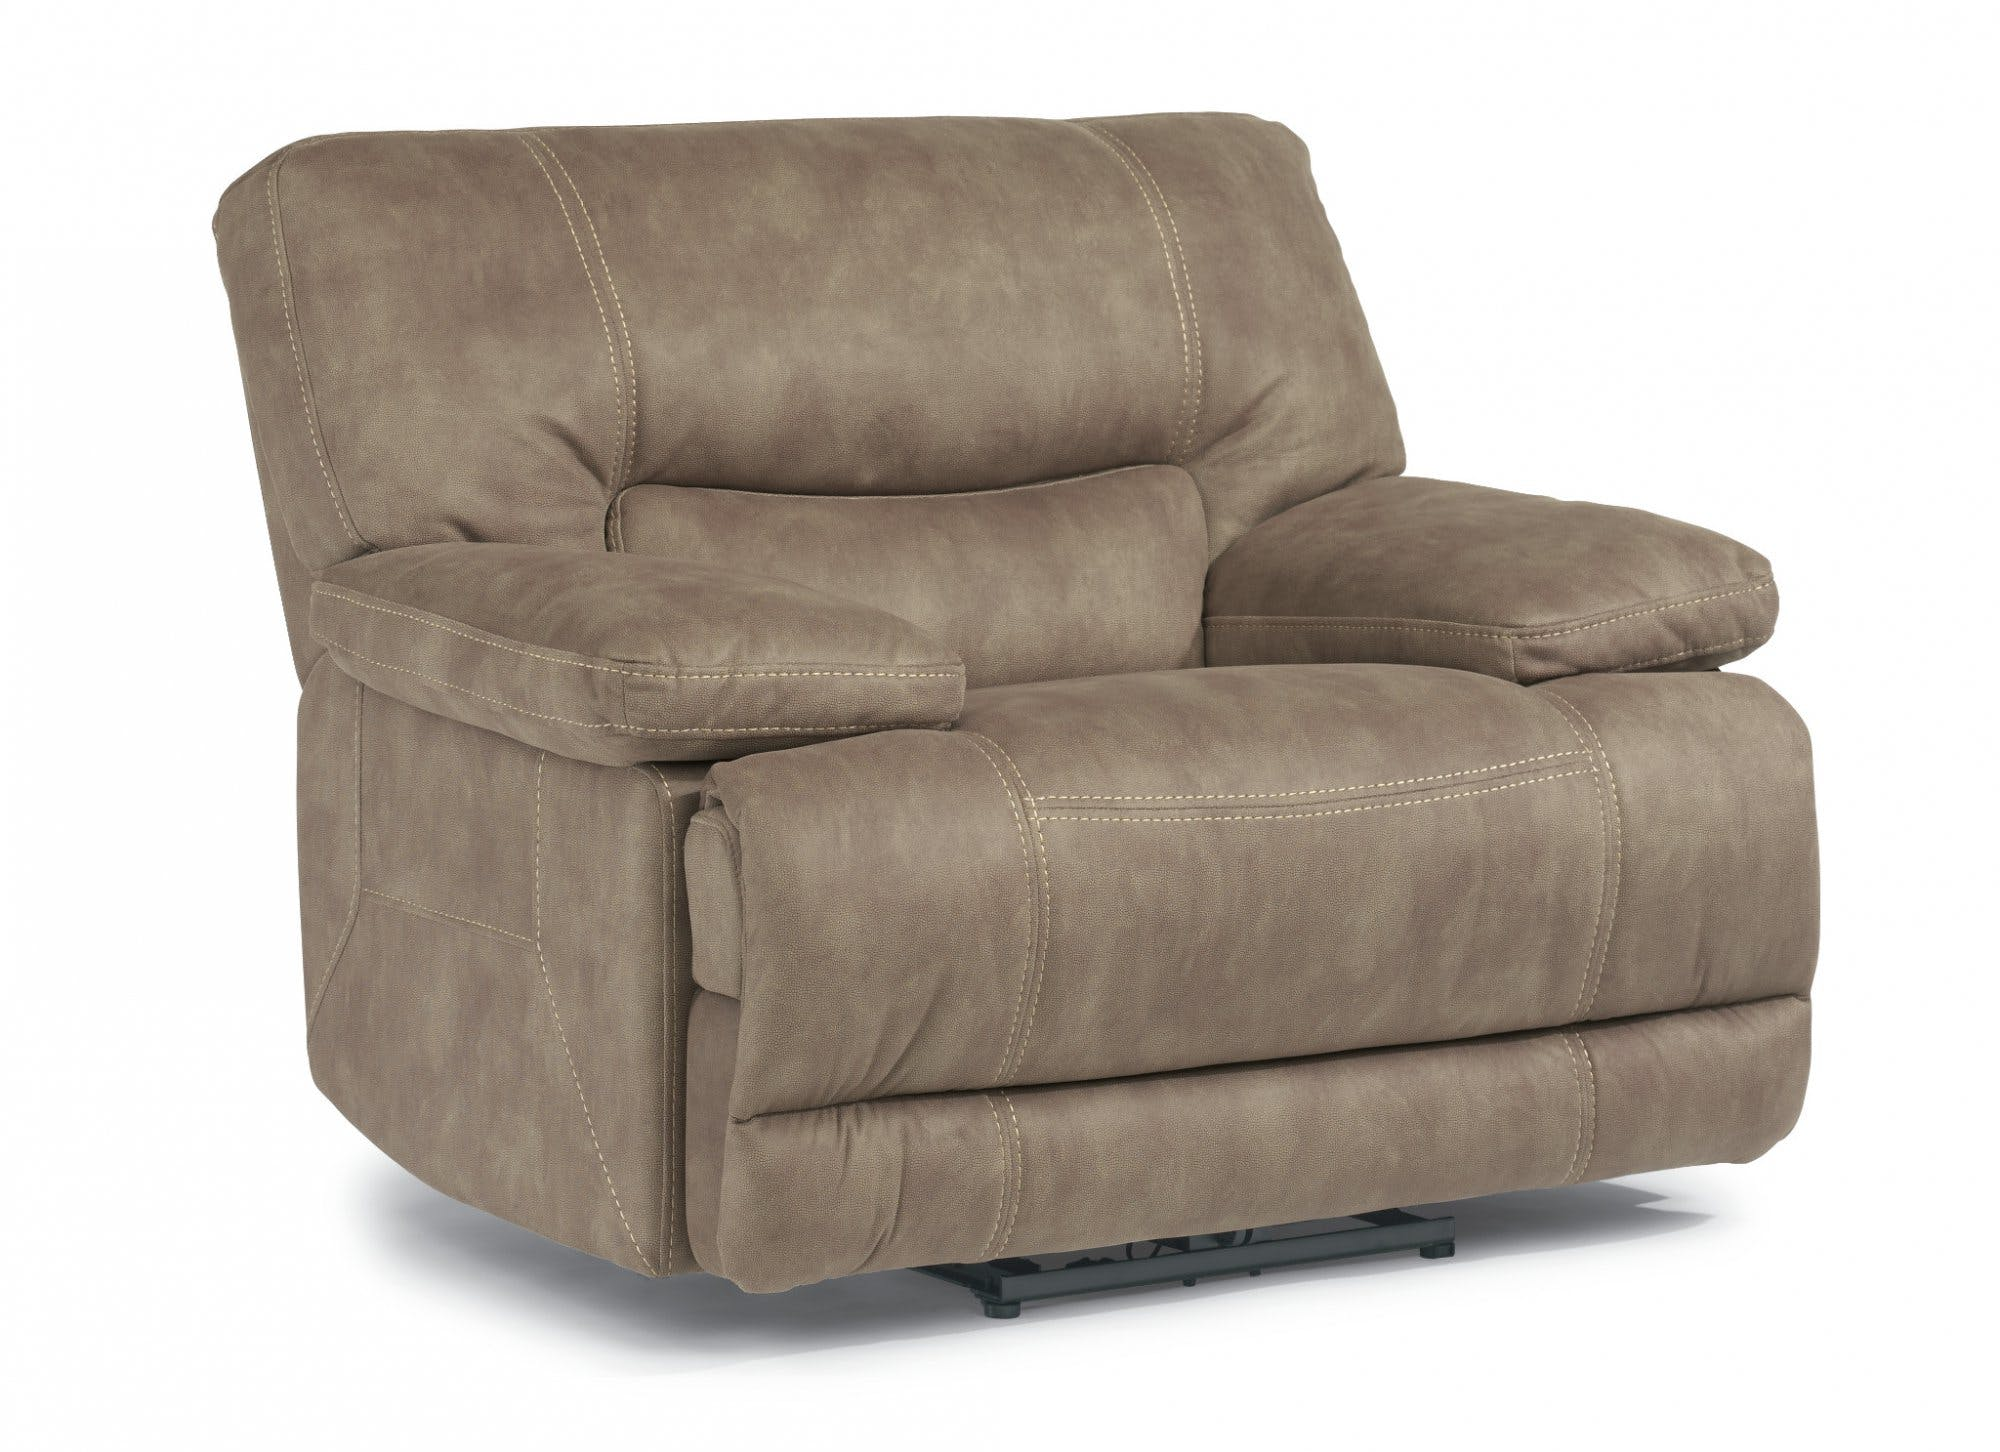 Flexsteel Living Room Fabric Power Recliner 1458-50P - Carol House